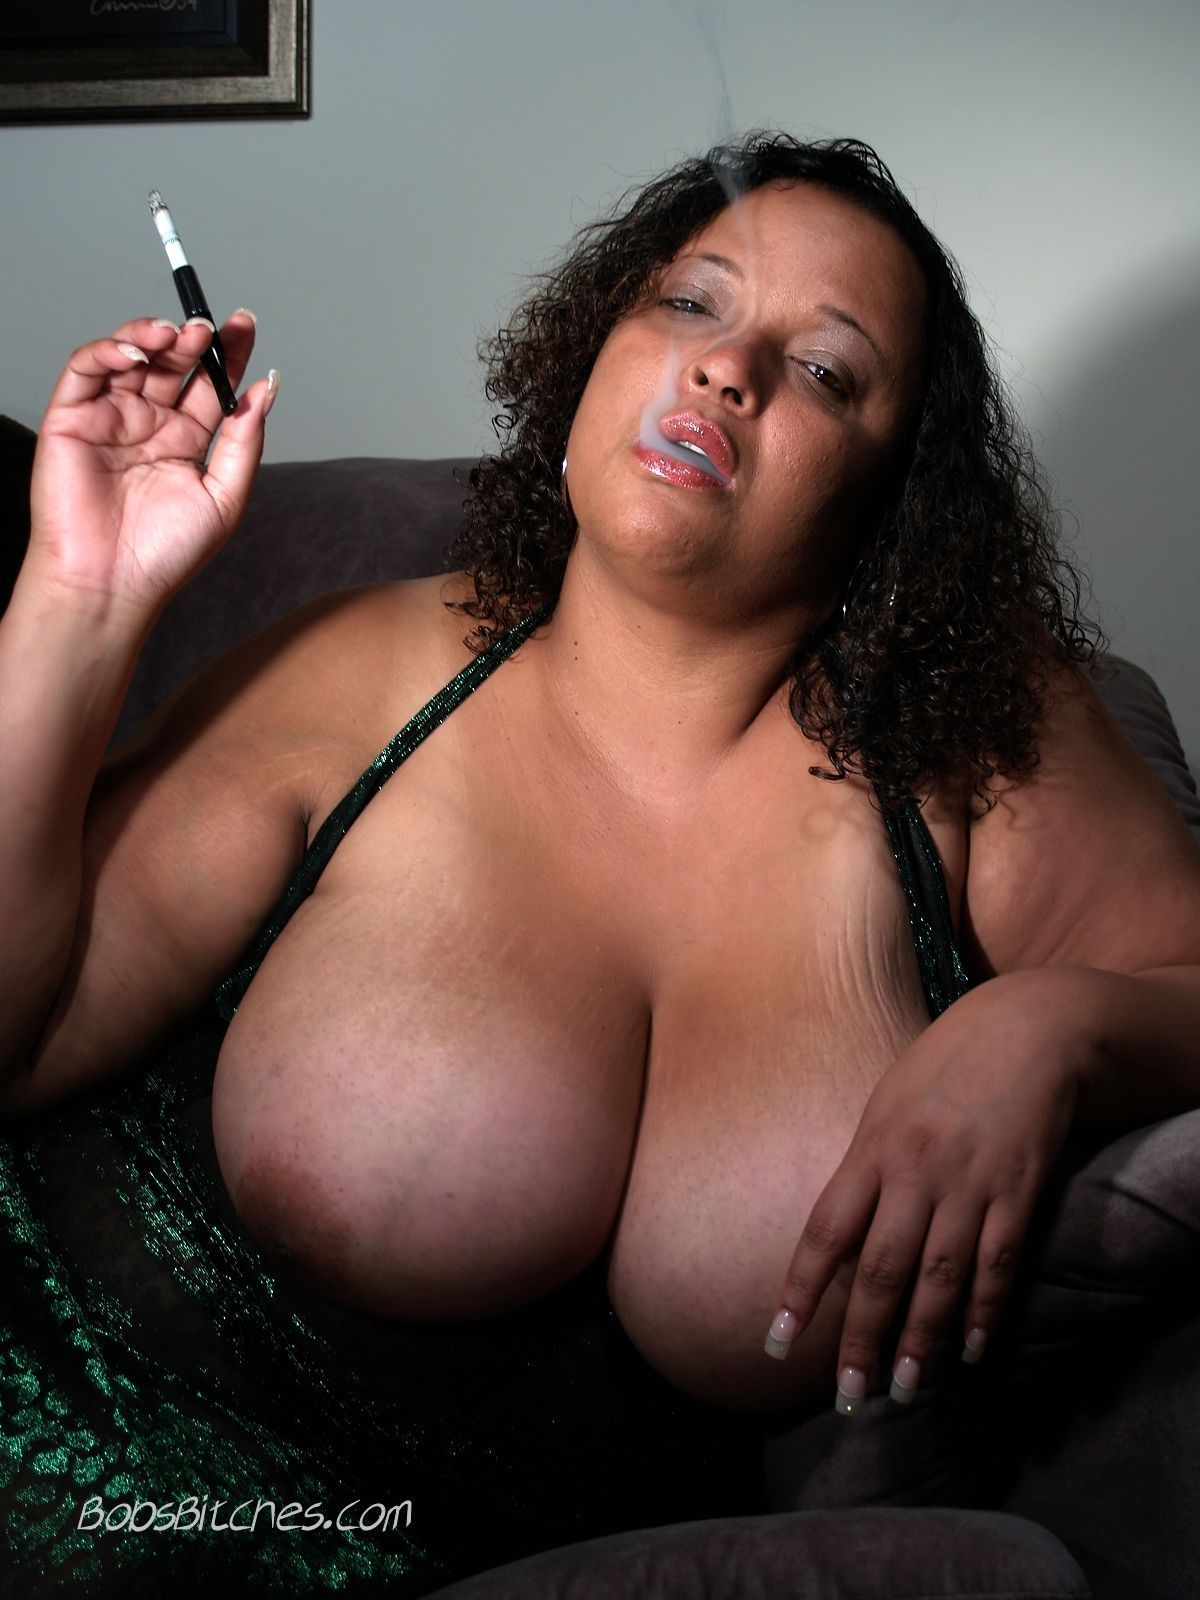 Hoopz naked flavor of love from of images